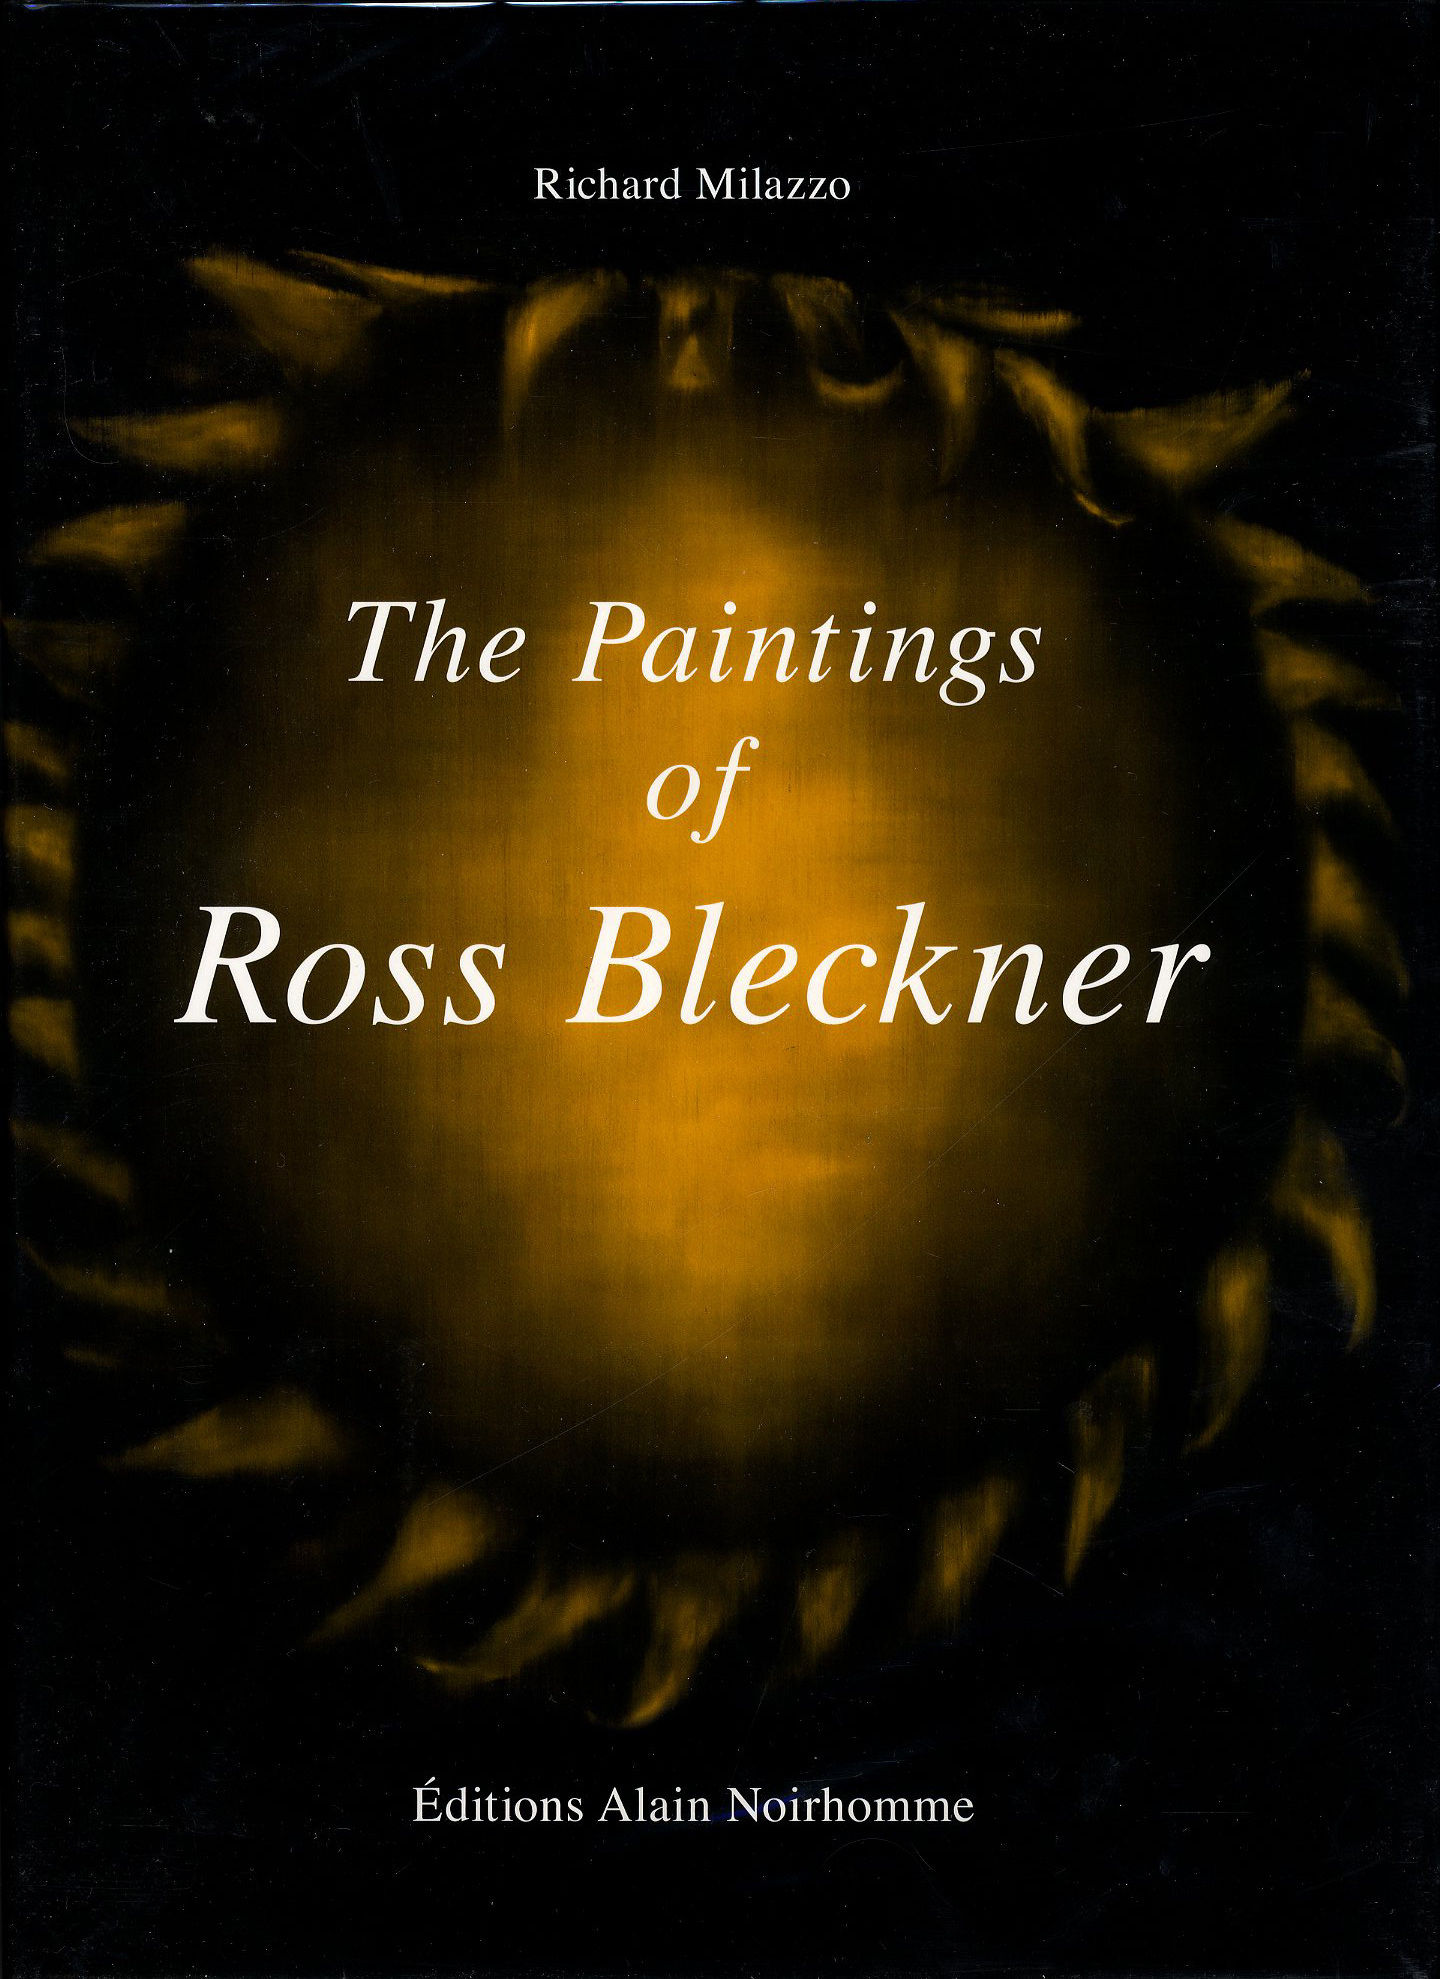 The Paintings of Ross Bleckner (Editions Alain Noirhomme) [SIGNED]